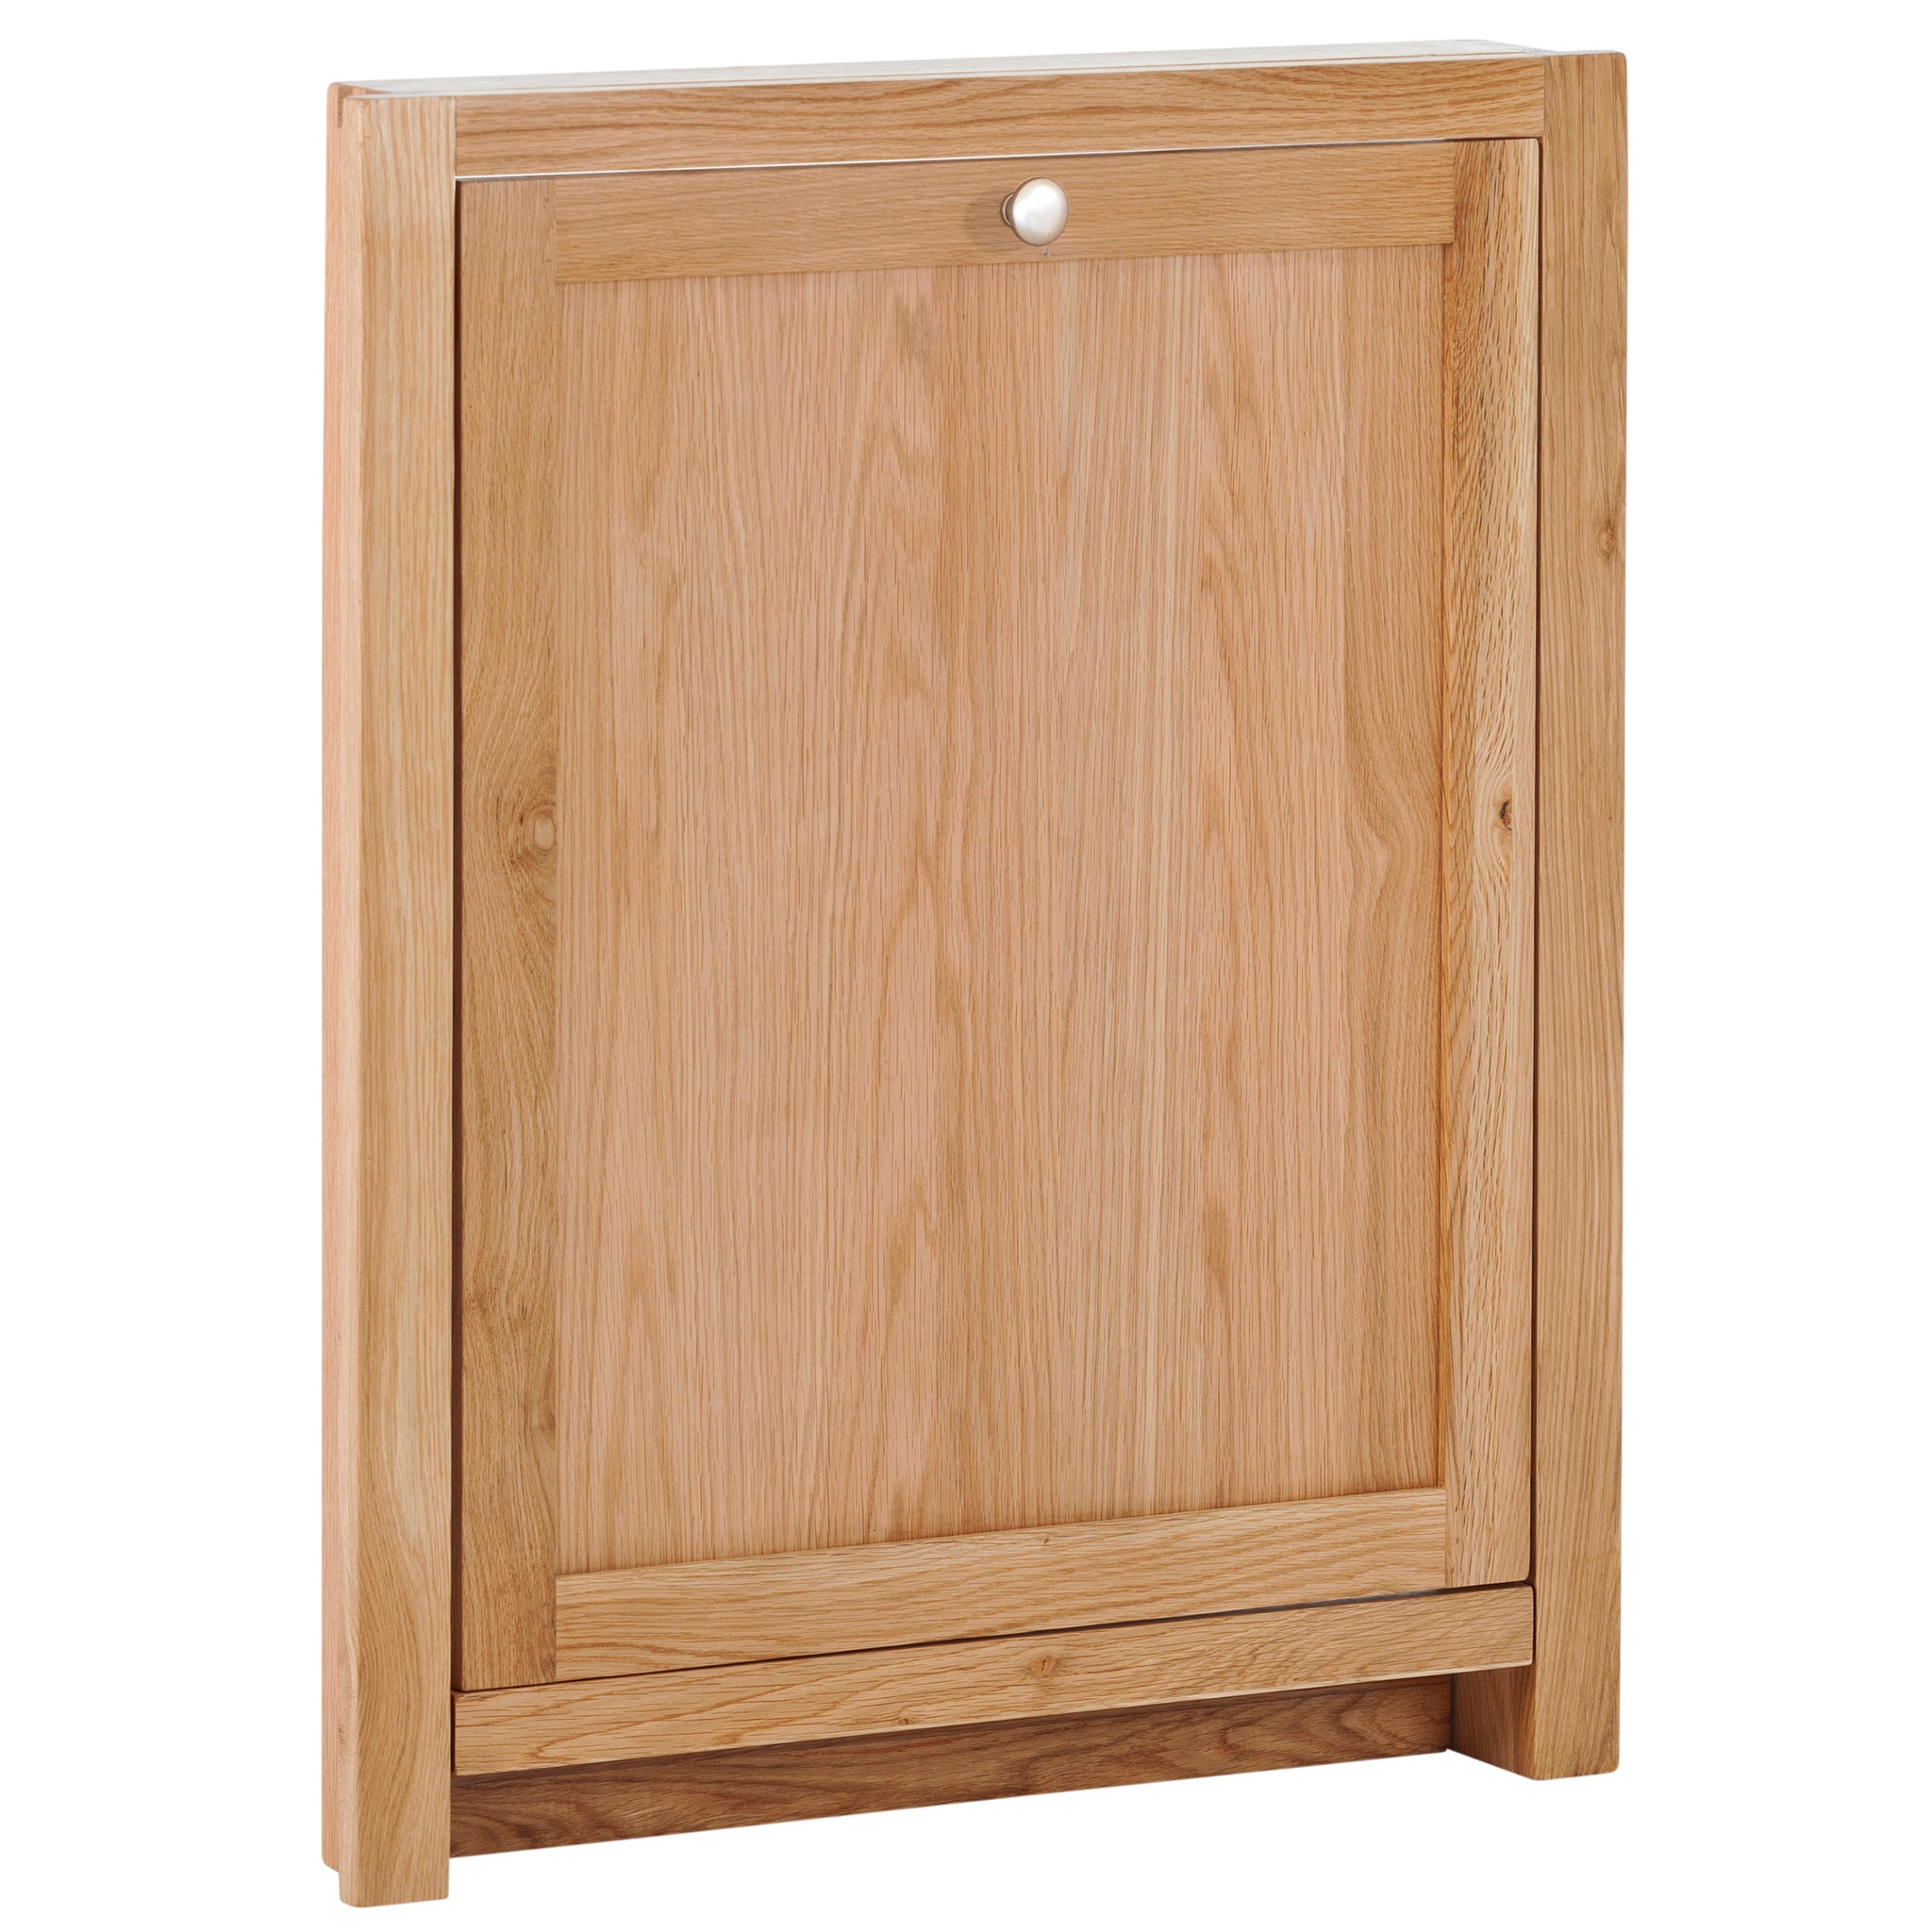 KIC018 - Oak Integrated Dishwasher Frame and Door